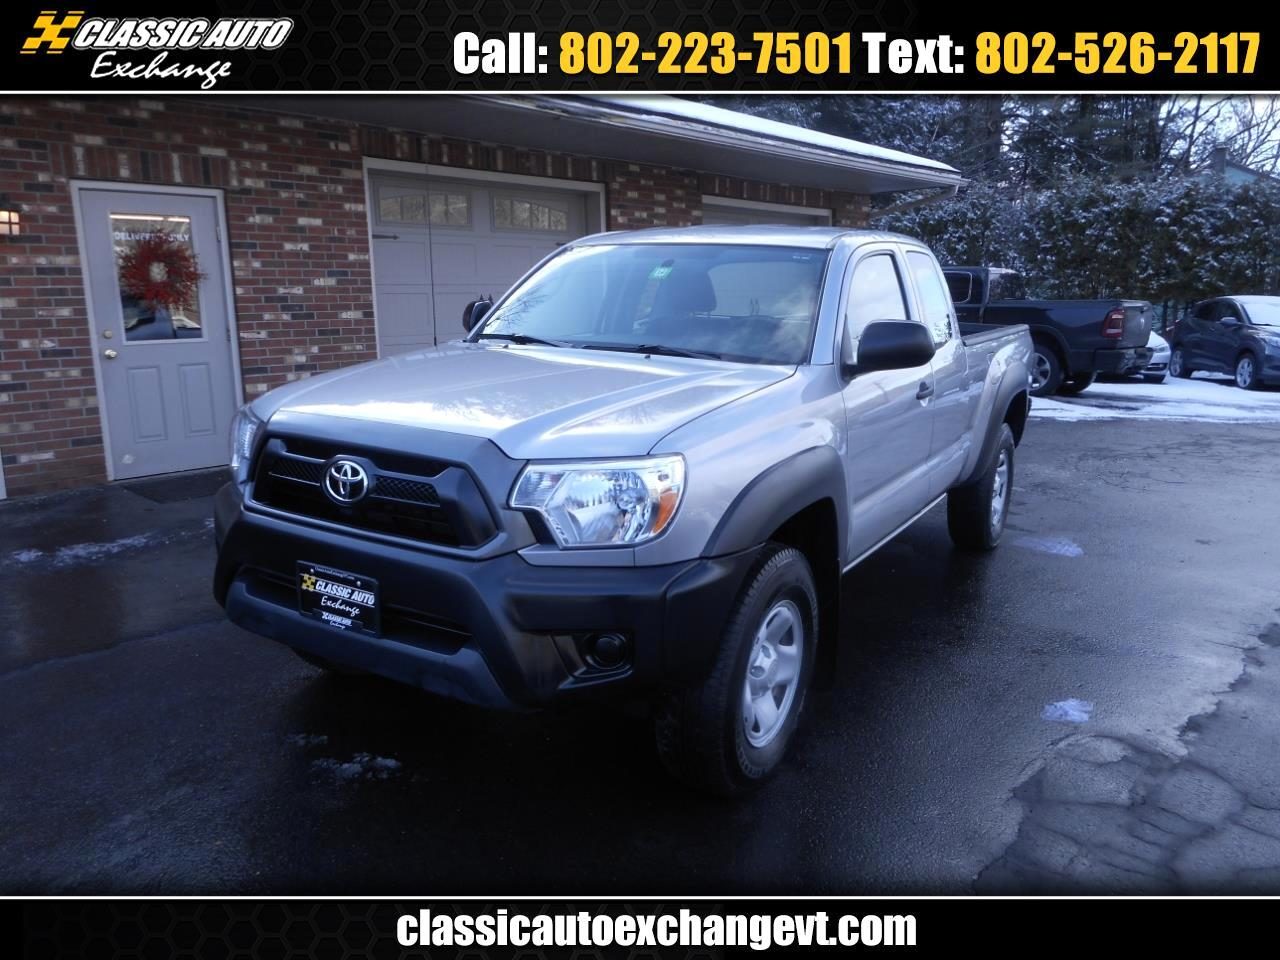 used 2015 toyota tacoma access cab i4 5mt 4wd for sale in berlin montpelier vt 05602 classic auto exchange classic auto exchange